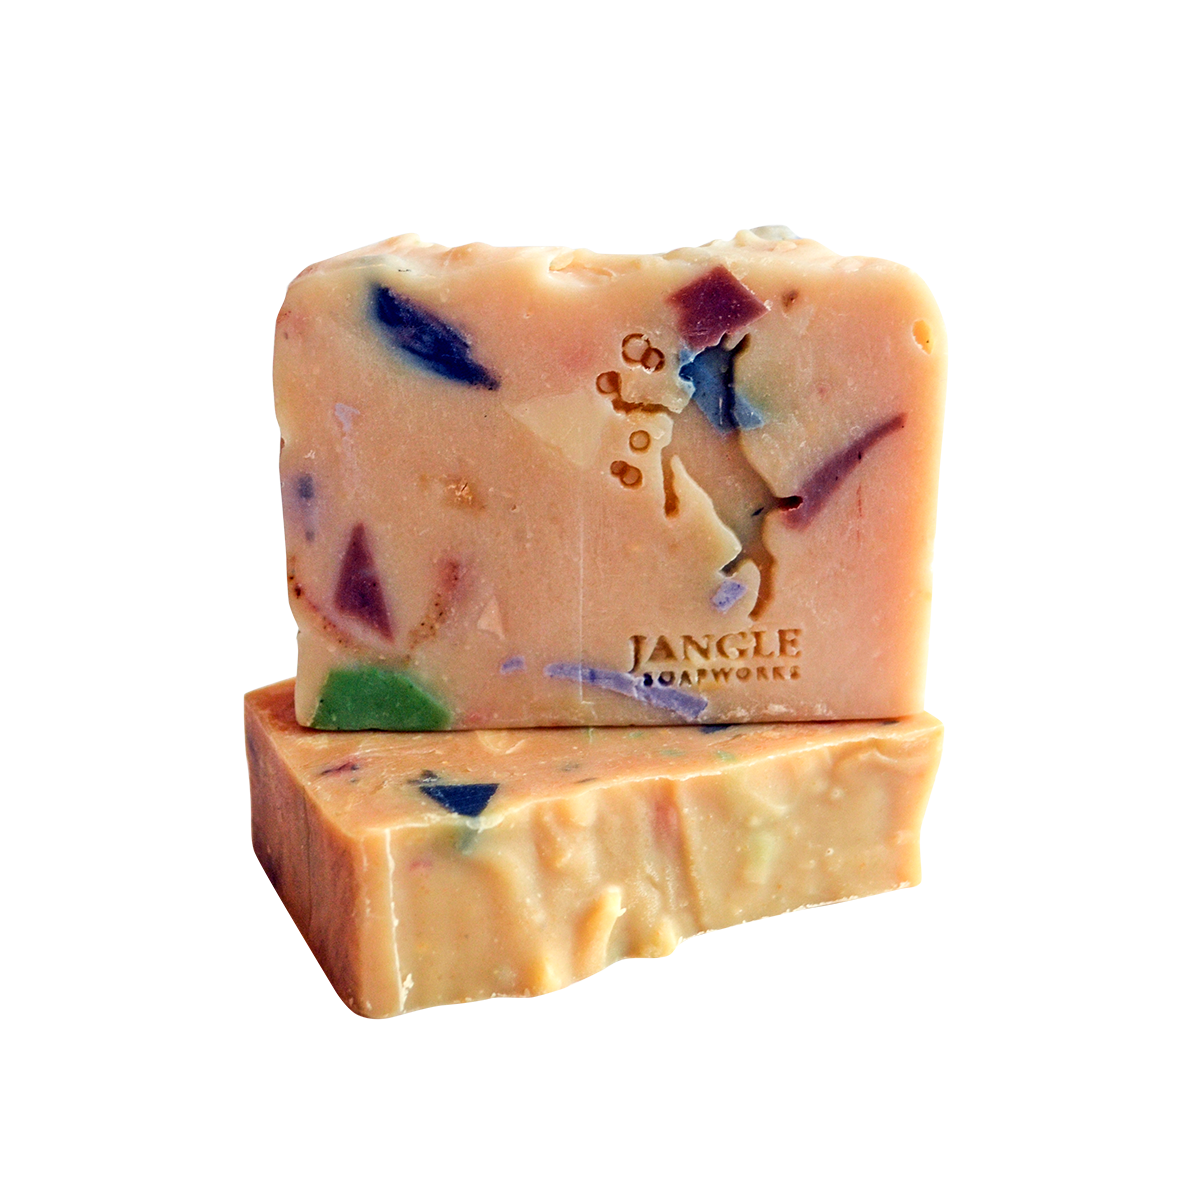 confetti goal milk soap